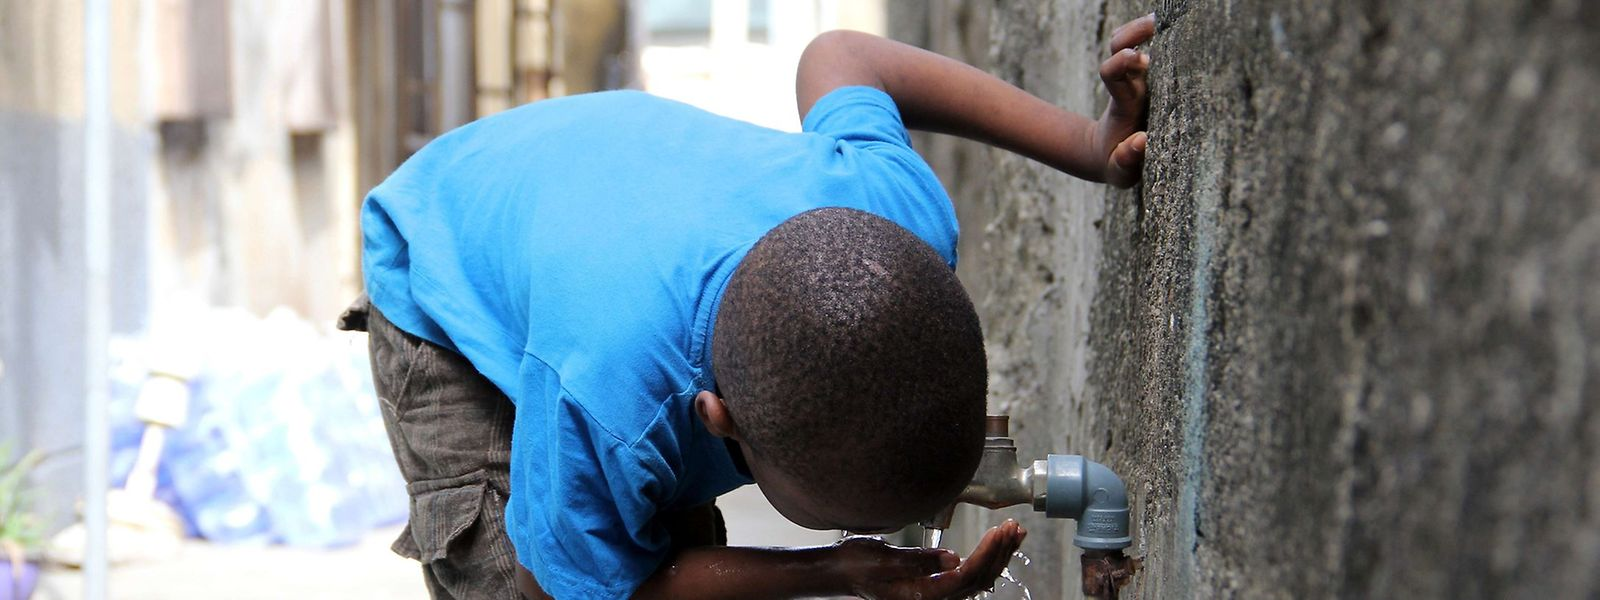 A boy drinks from a public tap in Lagos on March 19, 2015. AFP PHOTO/AREWA EMMANUEL